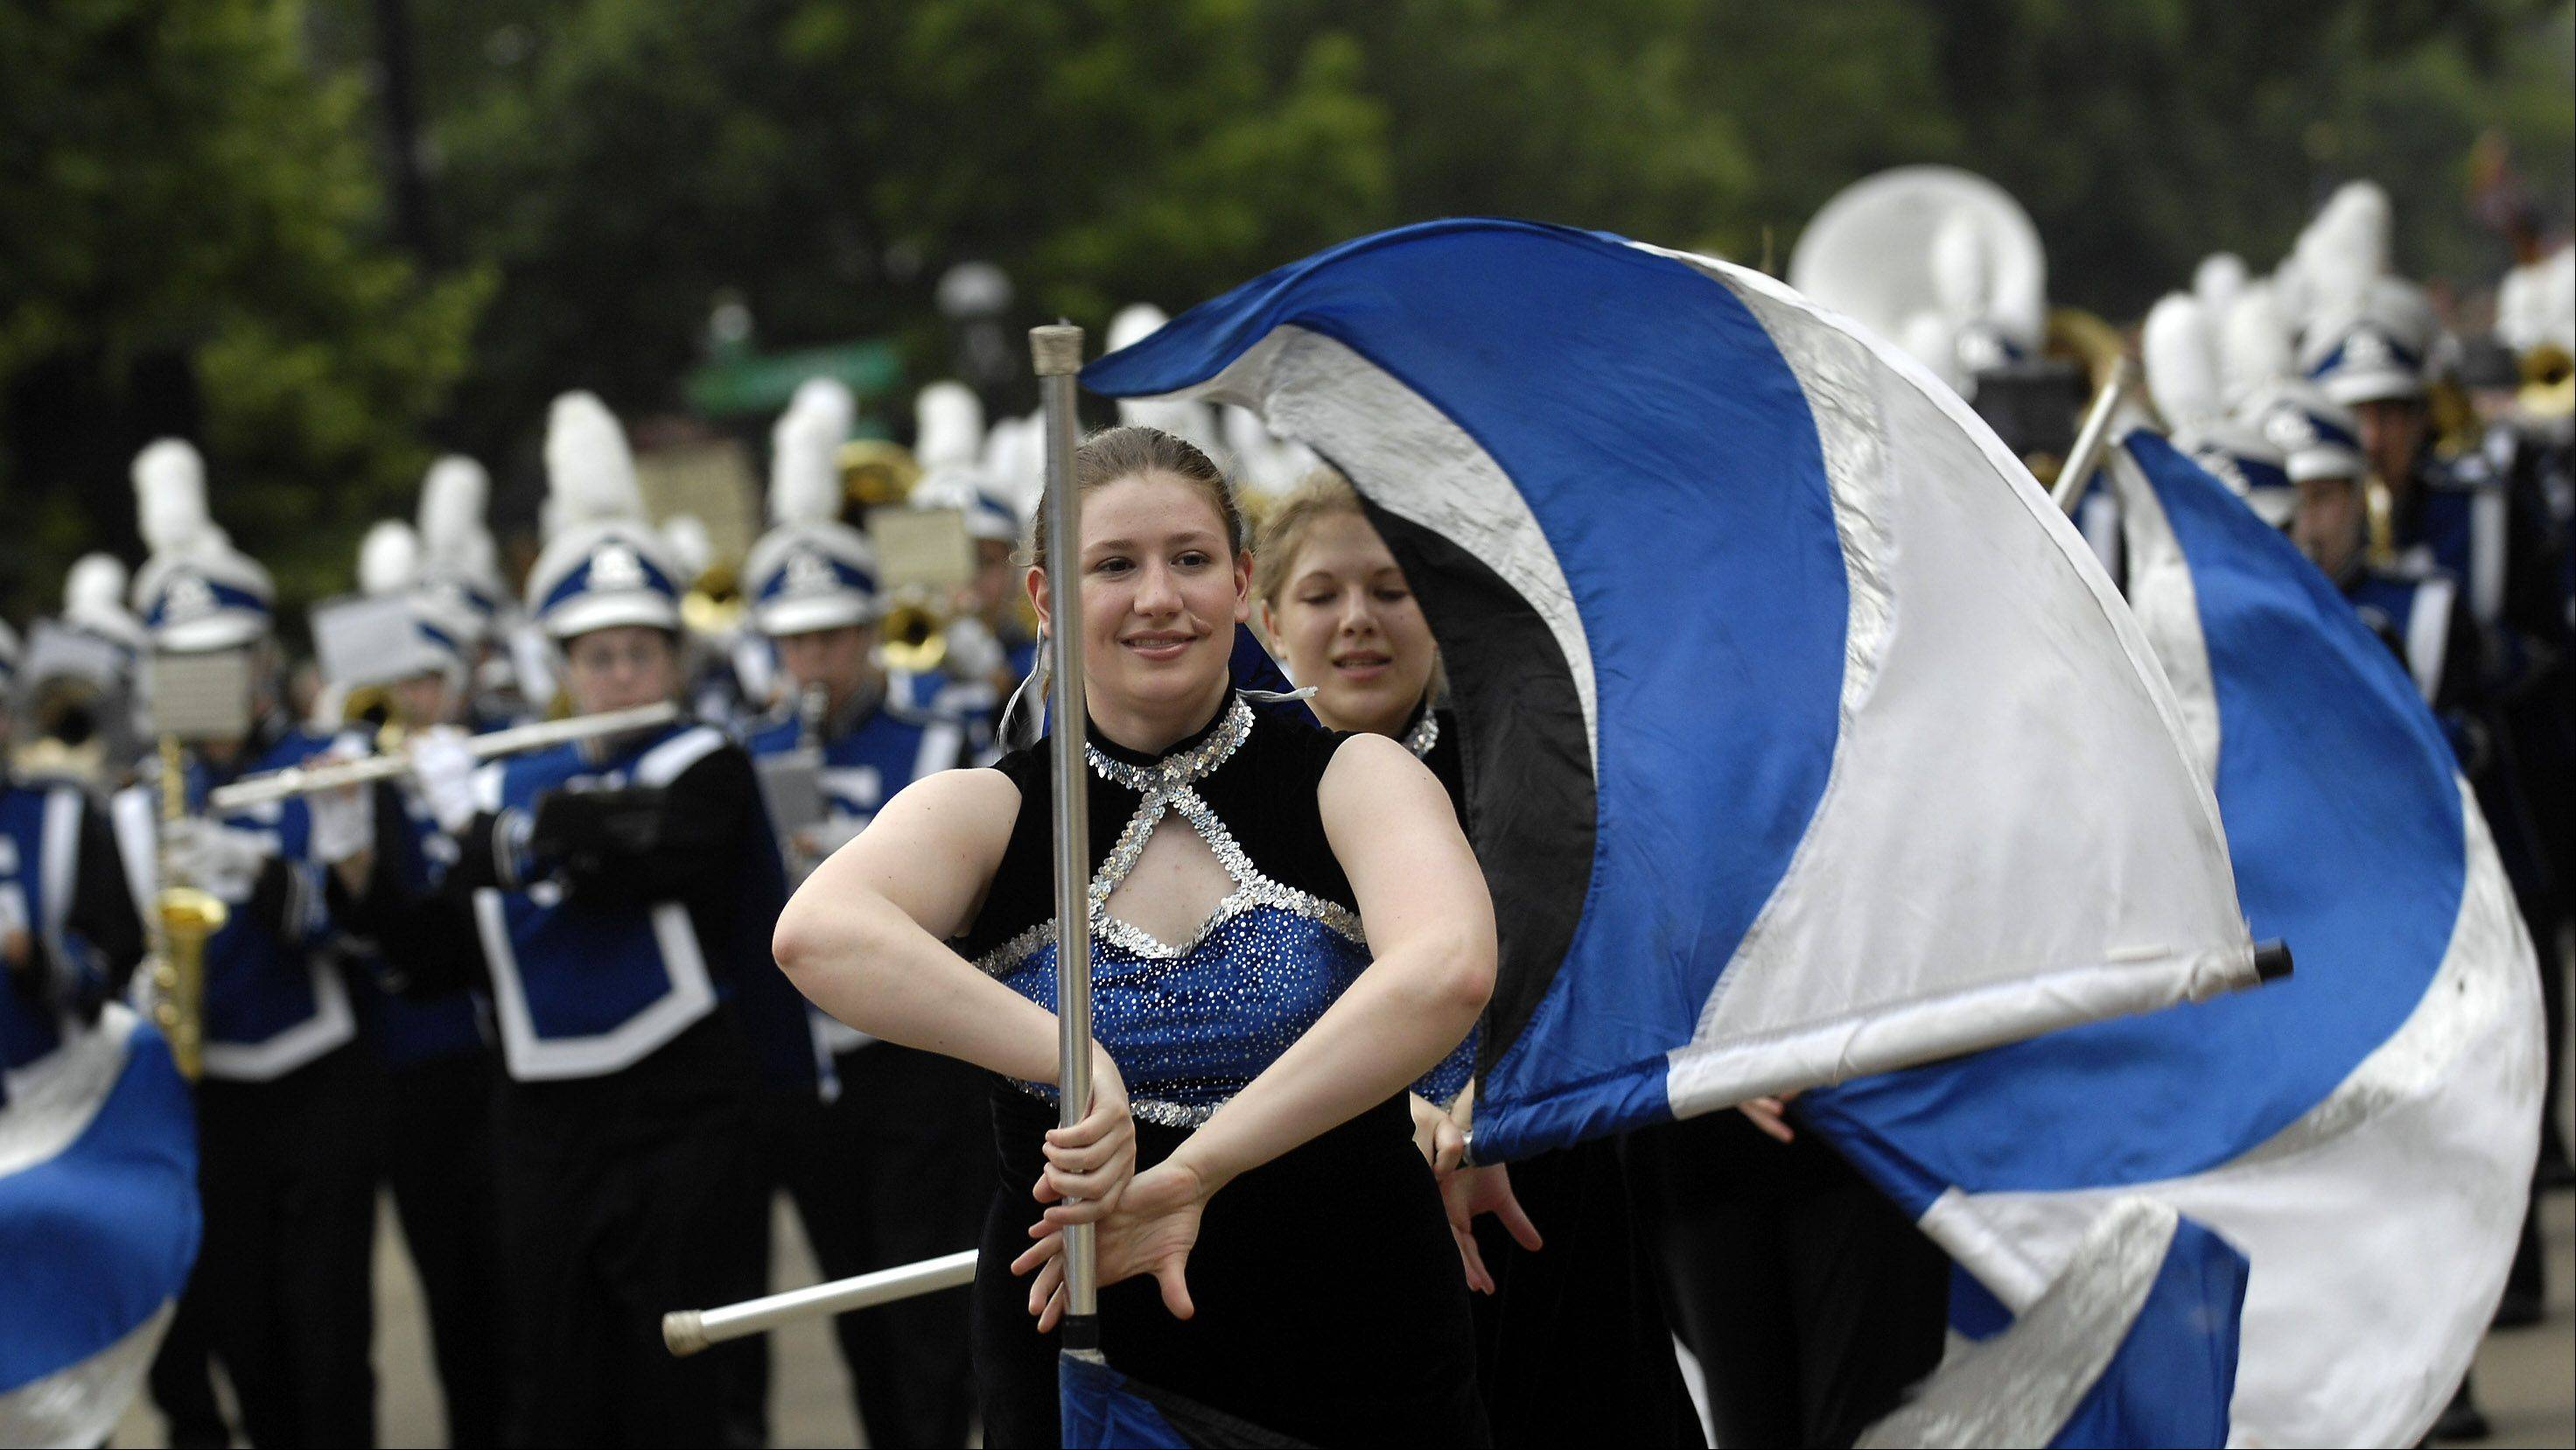 New uniforms for the Geneva High School marching band will be discussed Tuesday by the school board finance committee.